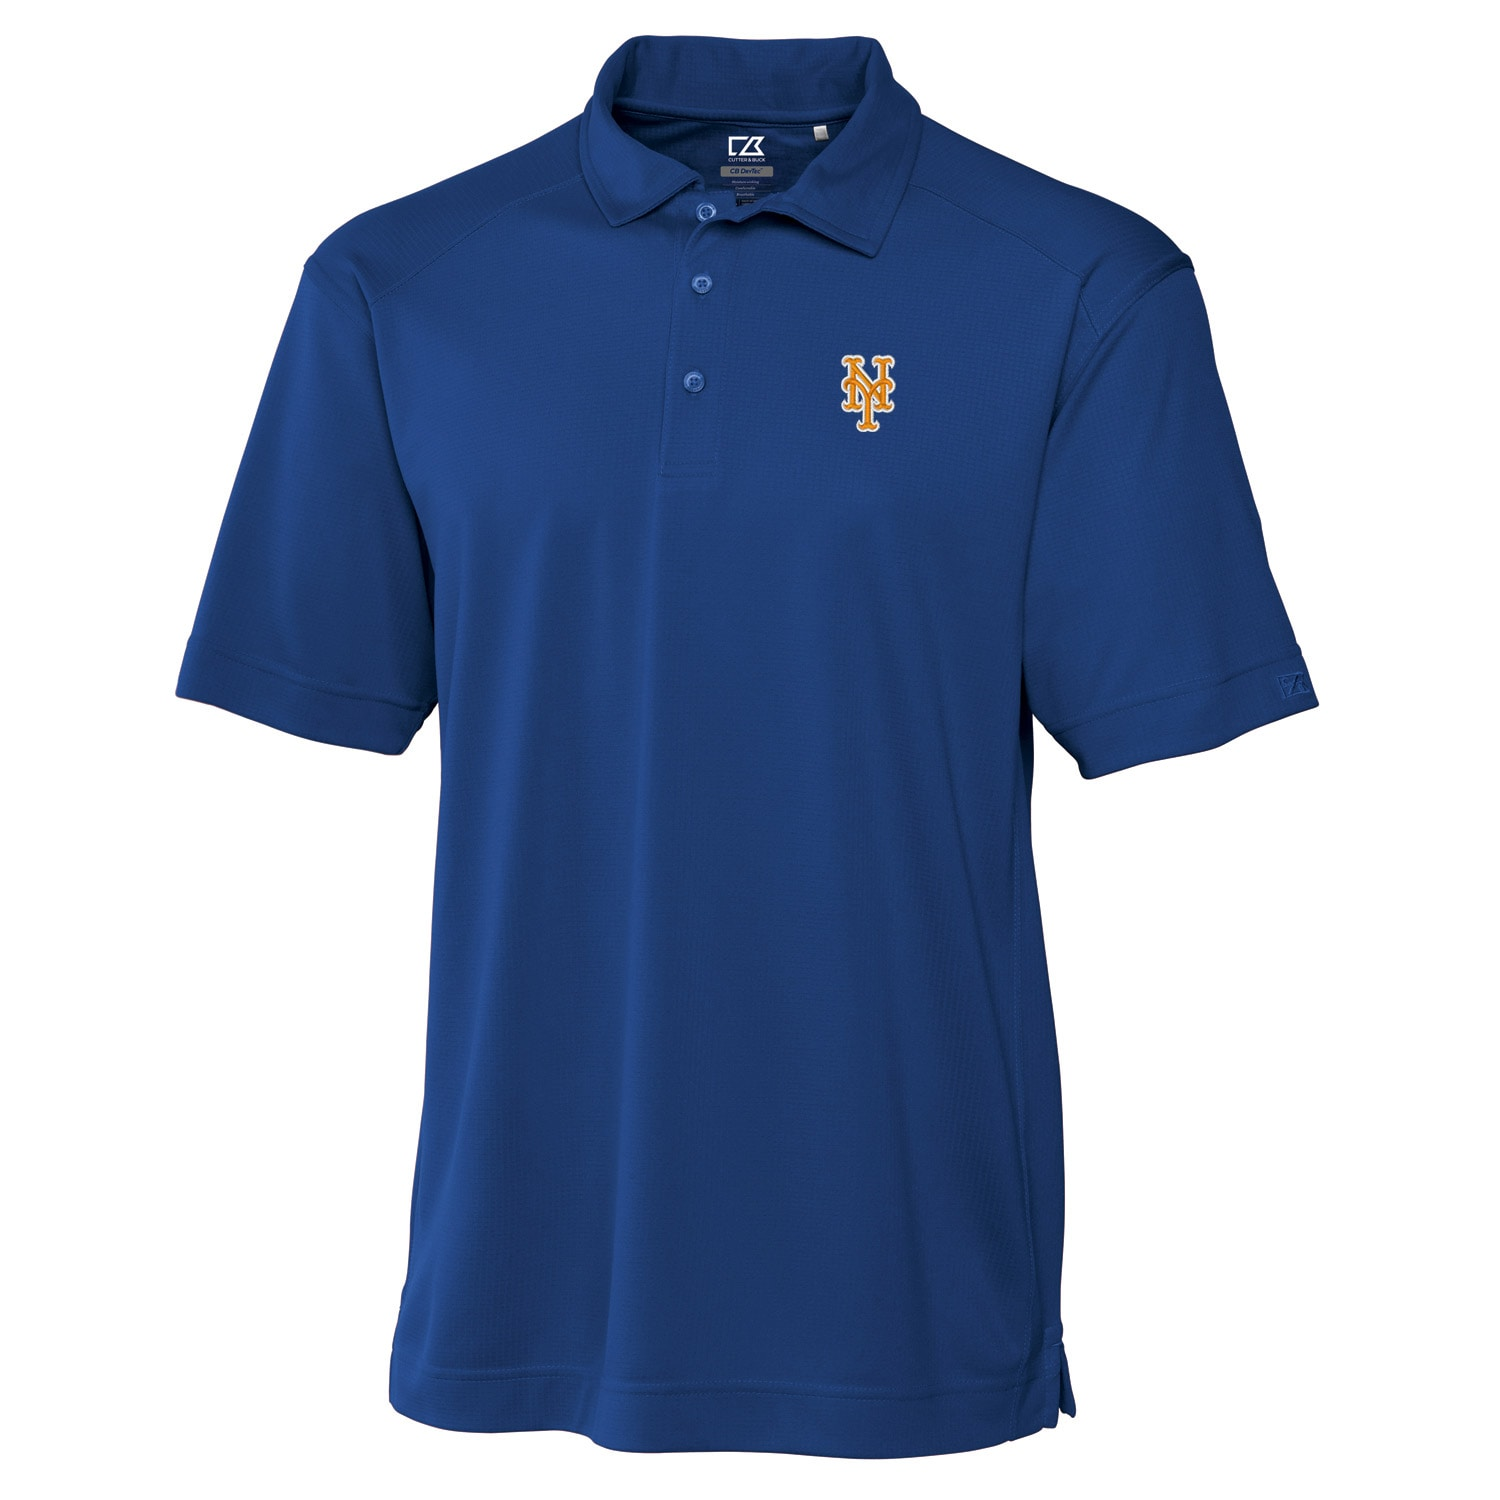 New York Mets Cutter & Buck Big & Tall DryTec Genre Polo - Royal